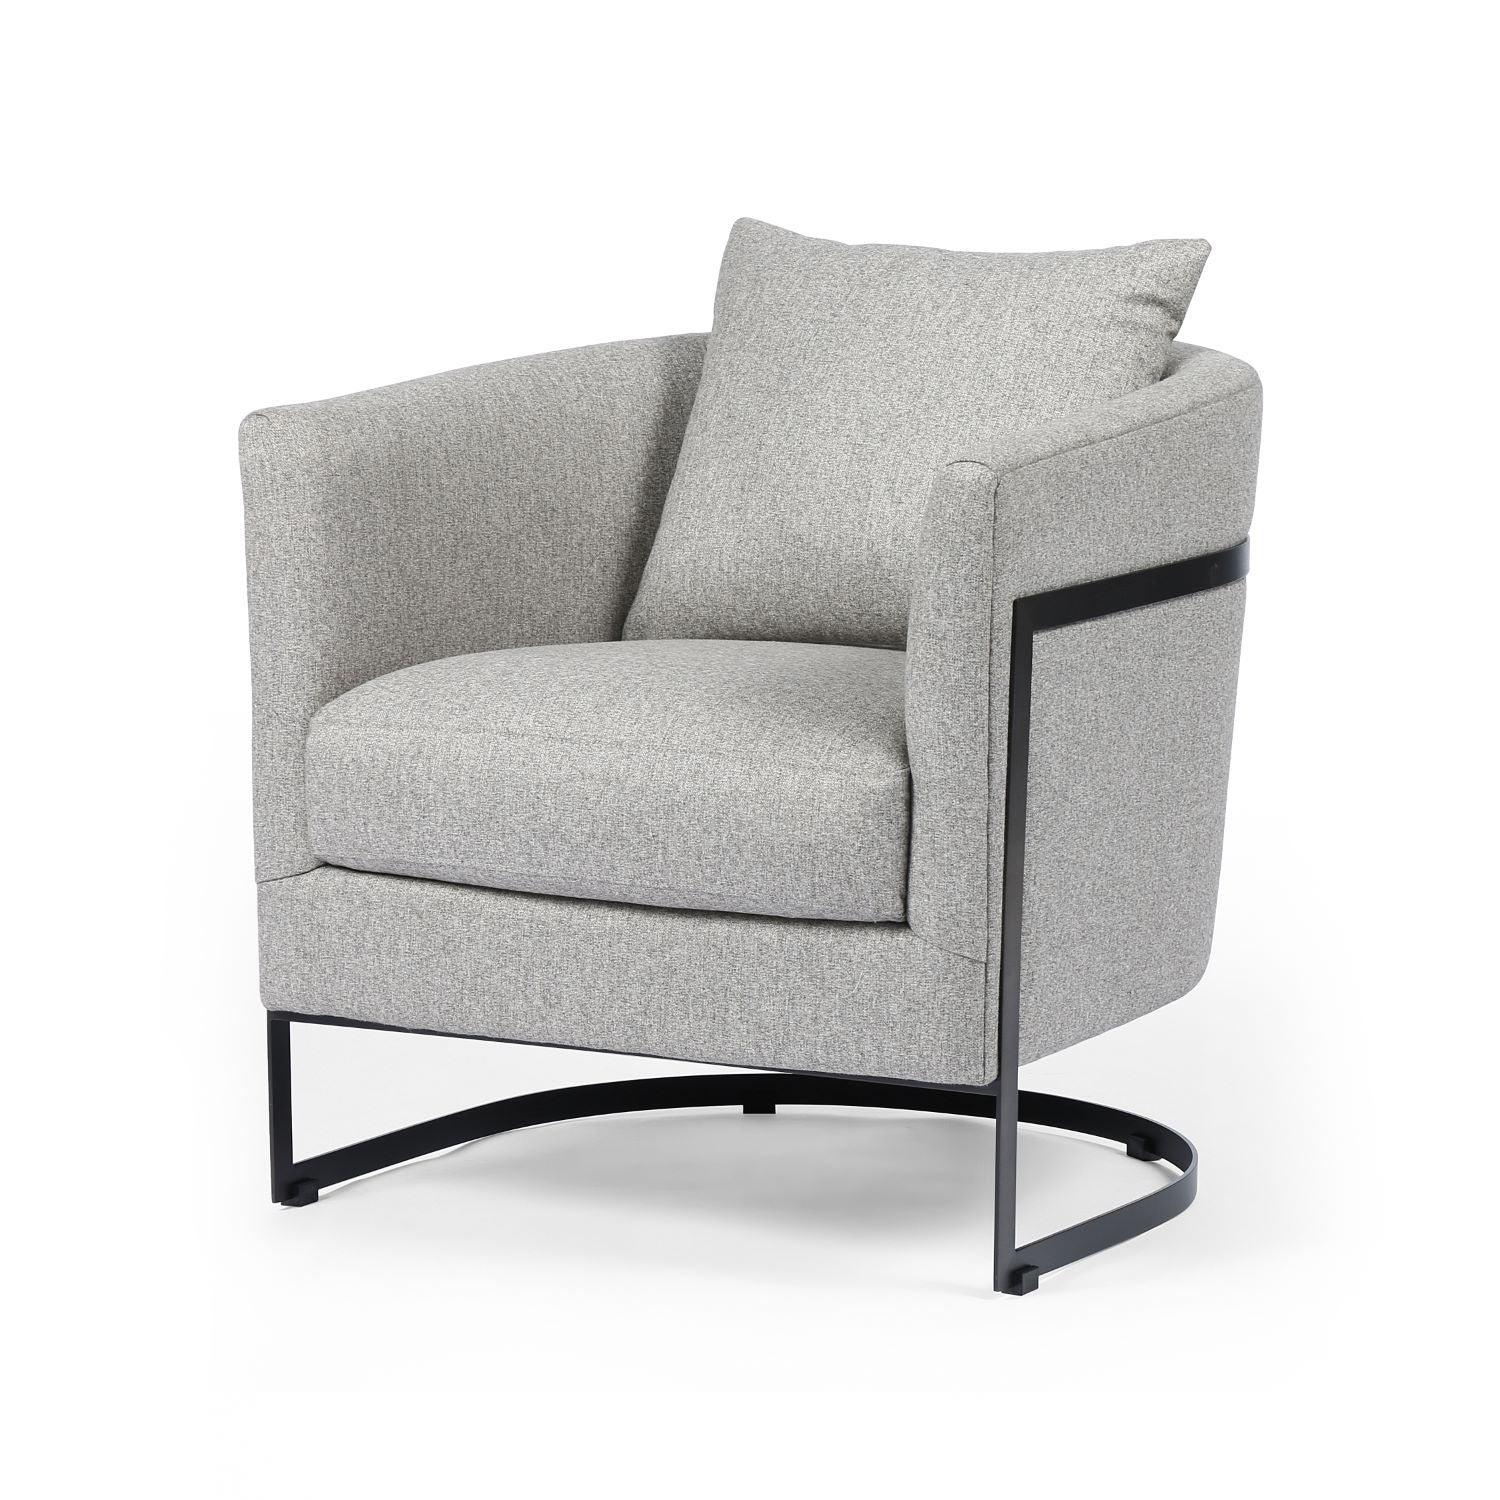 Dray Ly Natural Upholstered Chair Bridget S Room